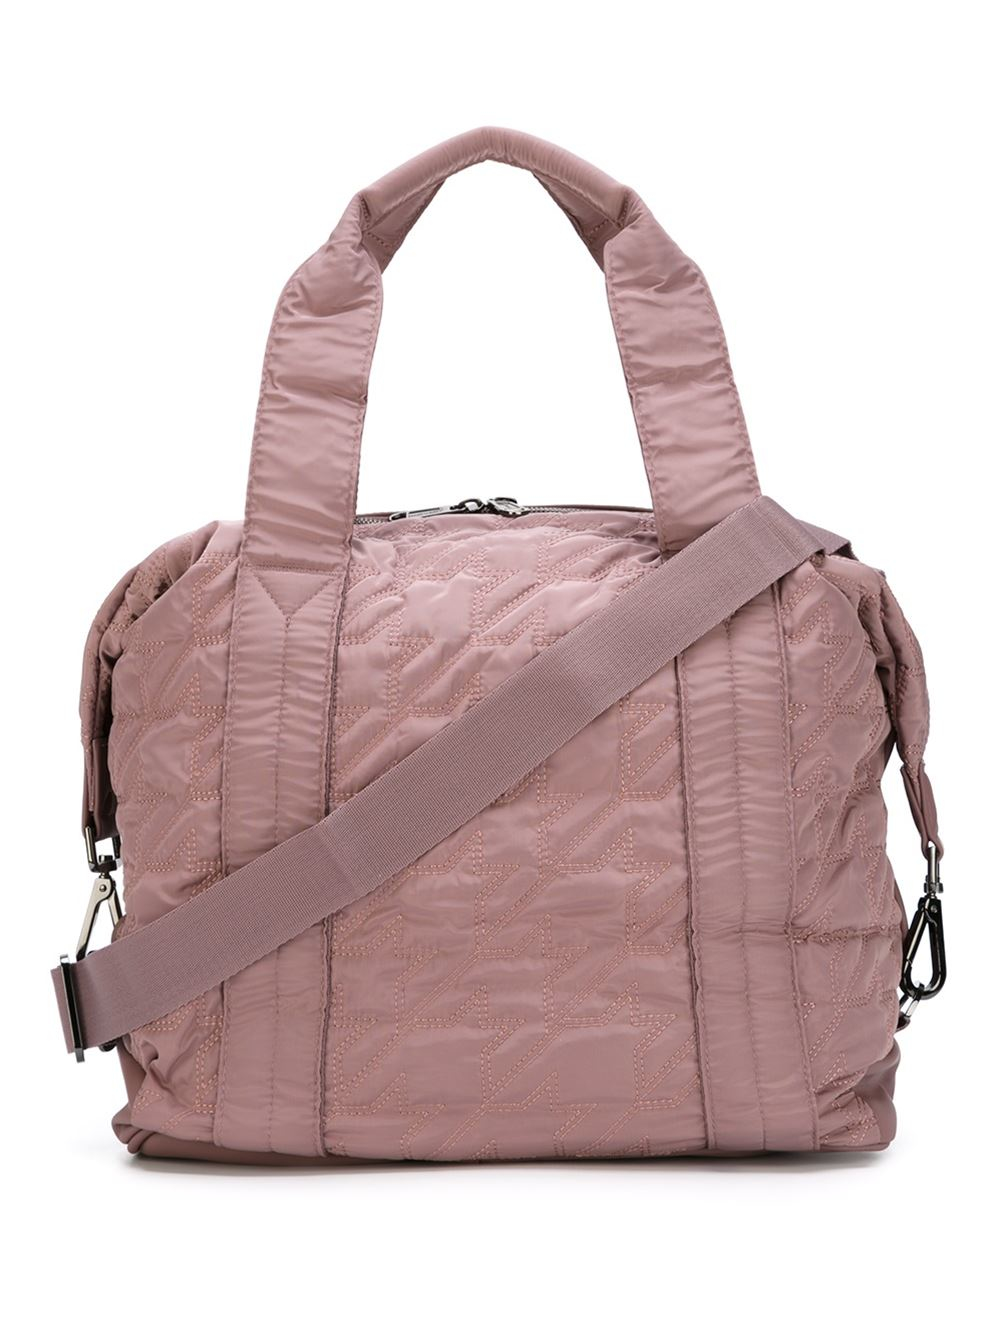 adidas By Stella McCartney Quilted Sports Bag in Pink - Lyst ba97caa41d